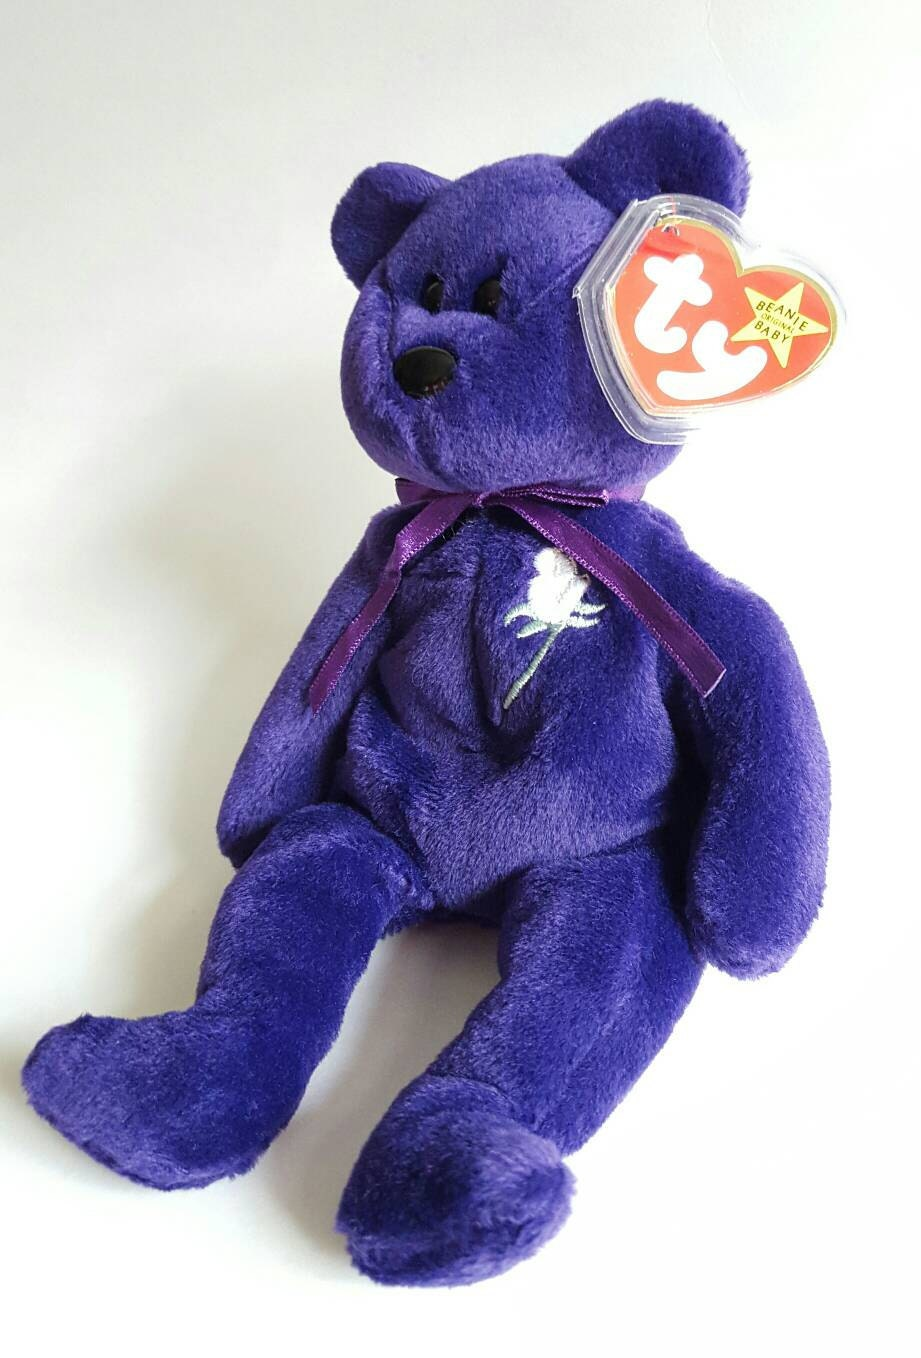 RARE 1st Edition 1997 TY Princess Diana Beanie Baby Made in